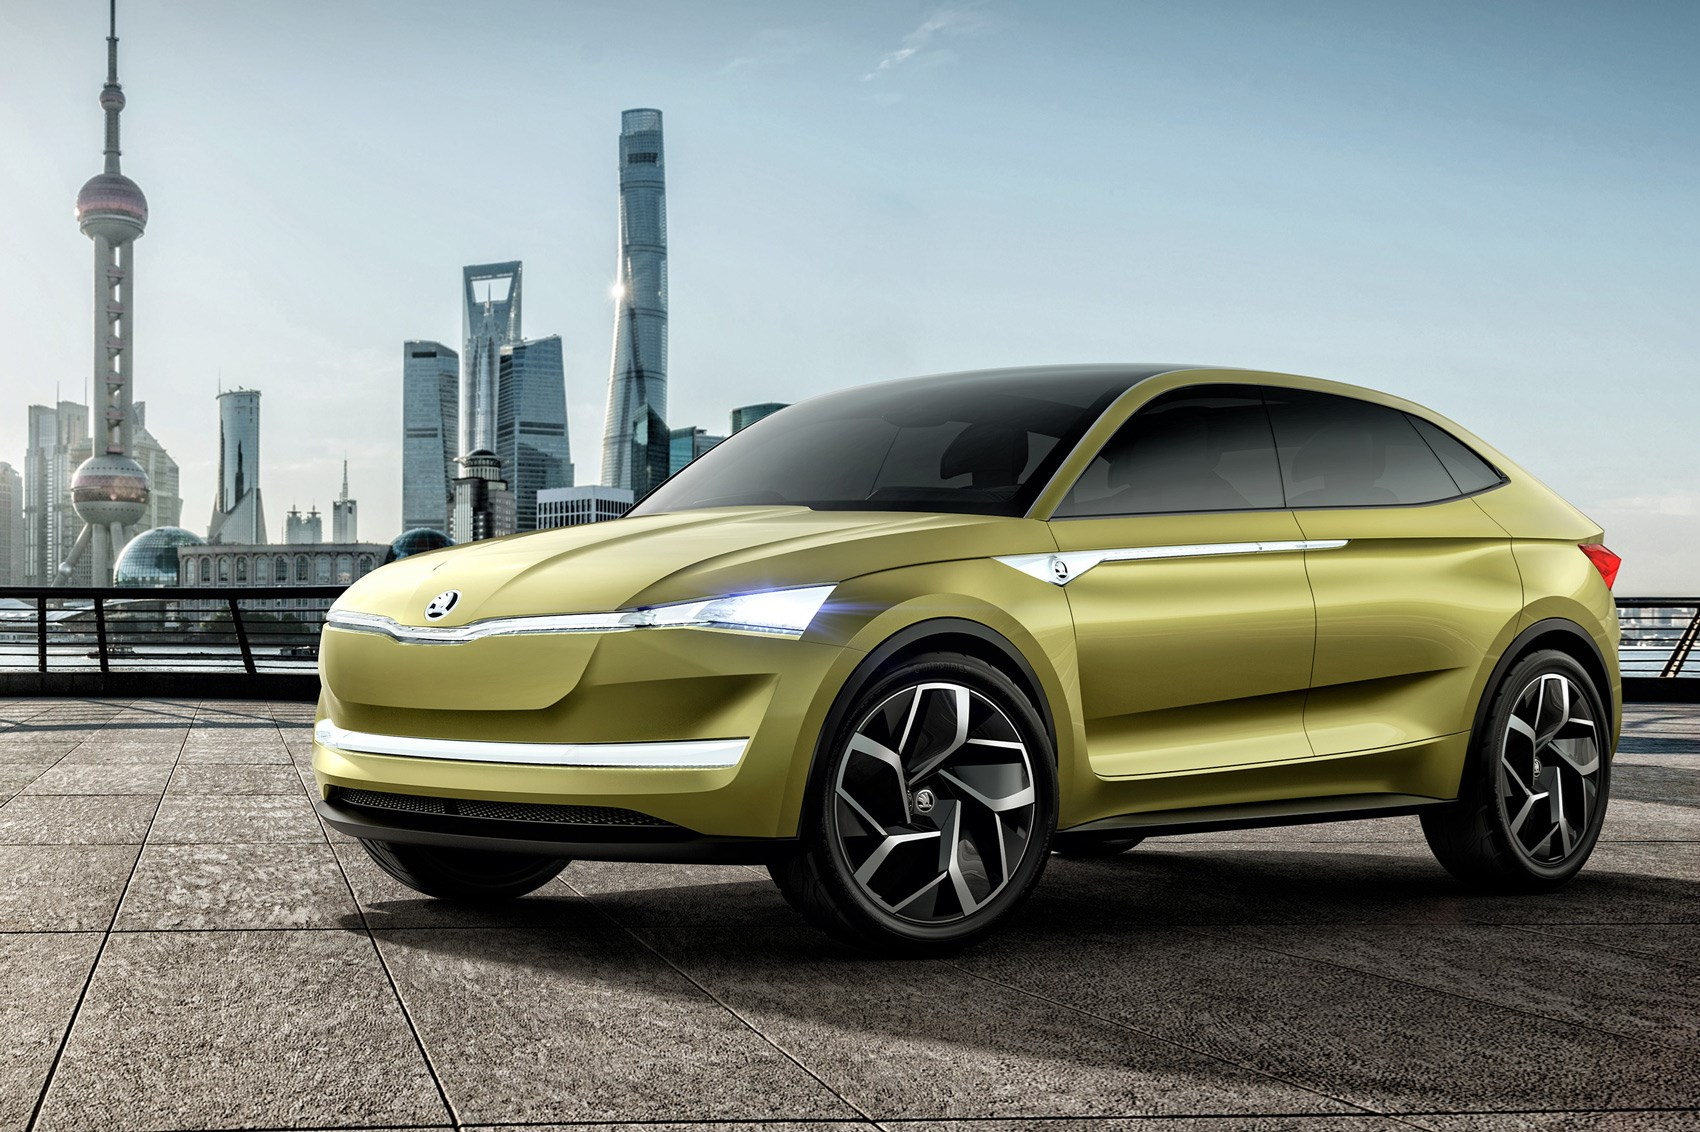 skoda vision e it 39 s the czechs 39 first electric car by car magazine. Black Bedroom Furniture Sets. Home Design Ideas